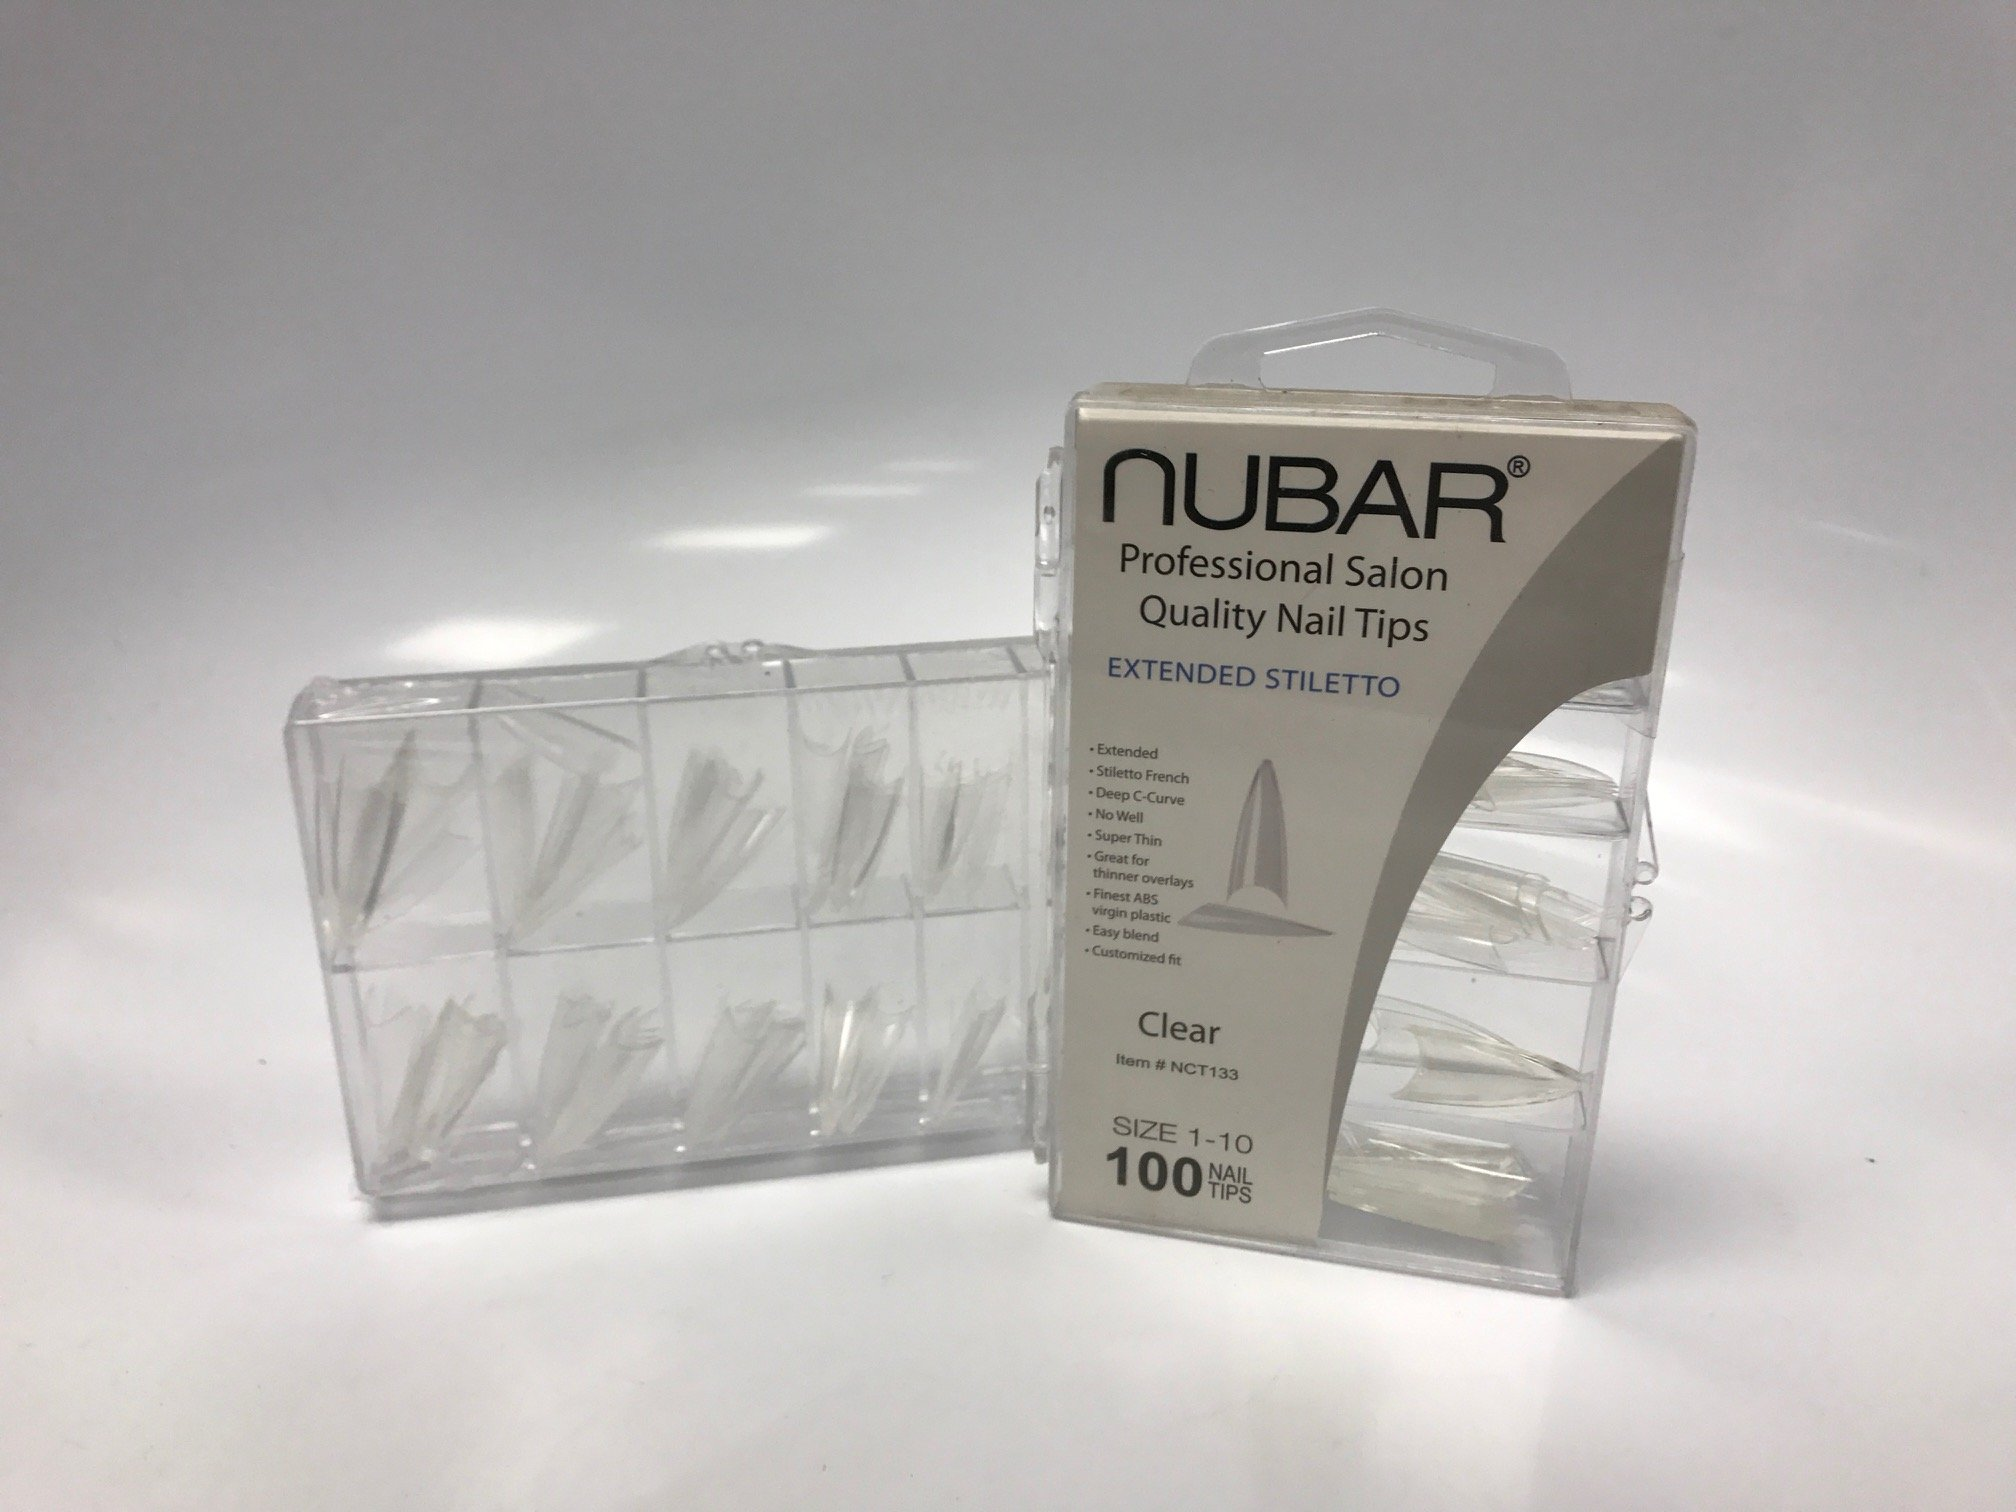 Nubar Professional Salon Quality Clear Nail Tips (Extended Stilletto) by Nubar